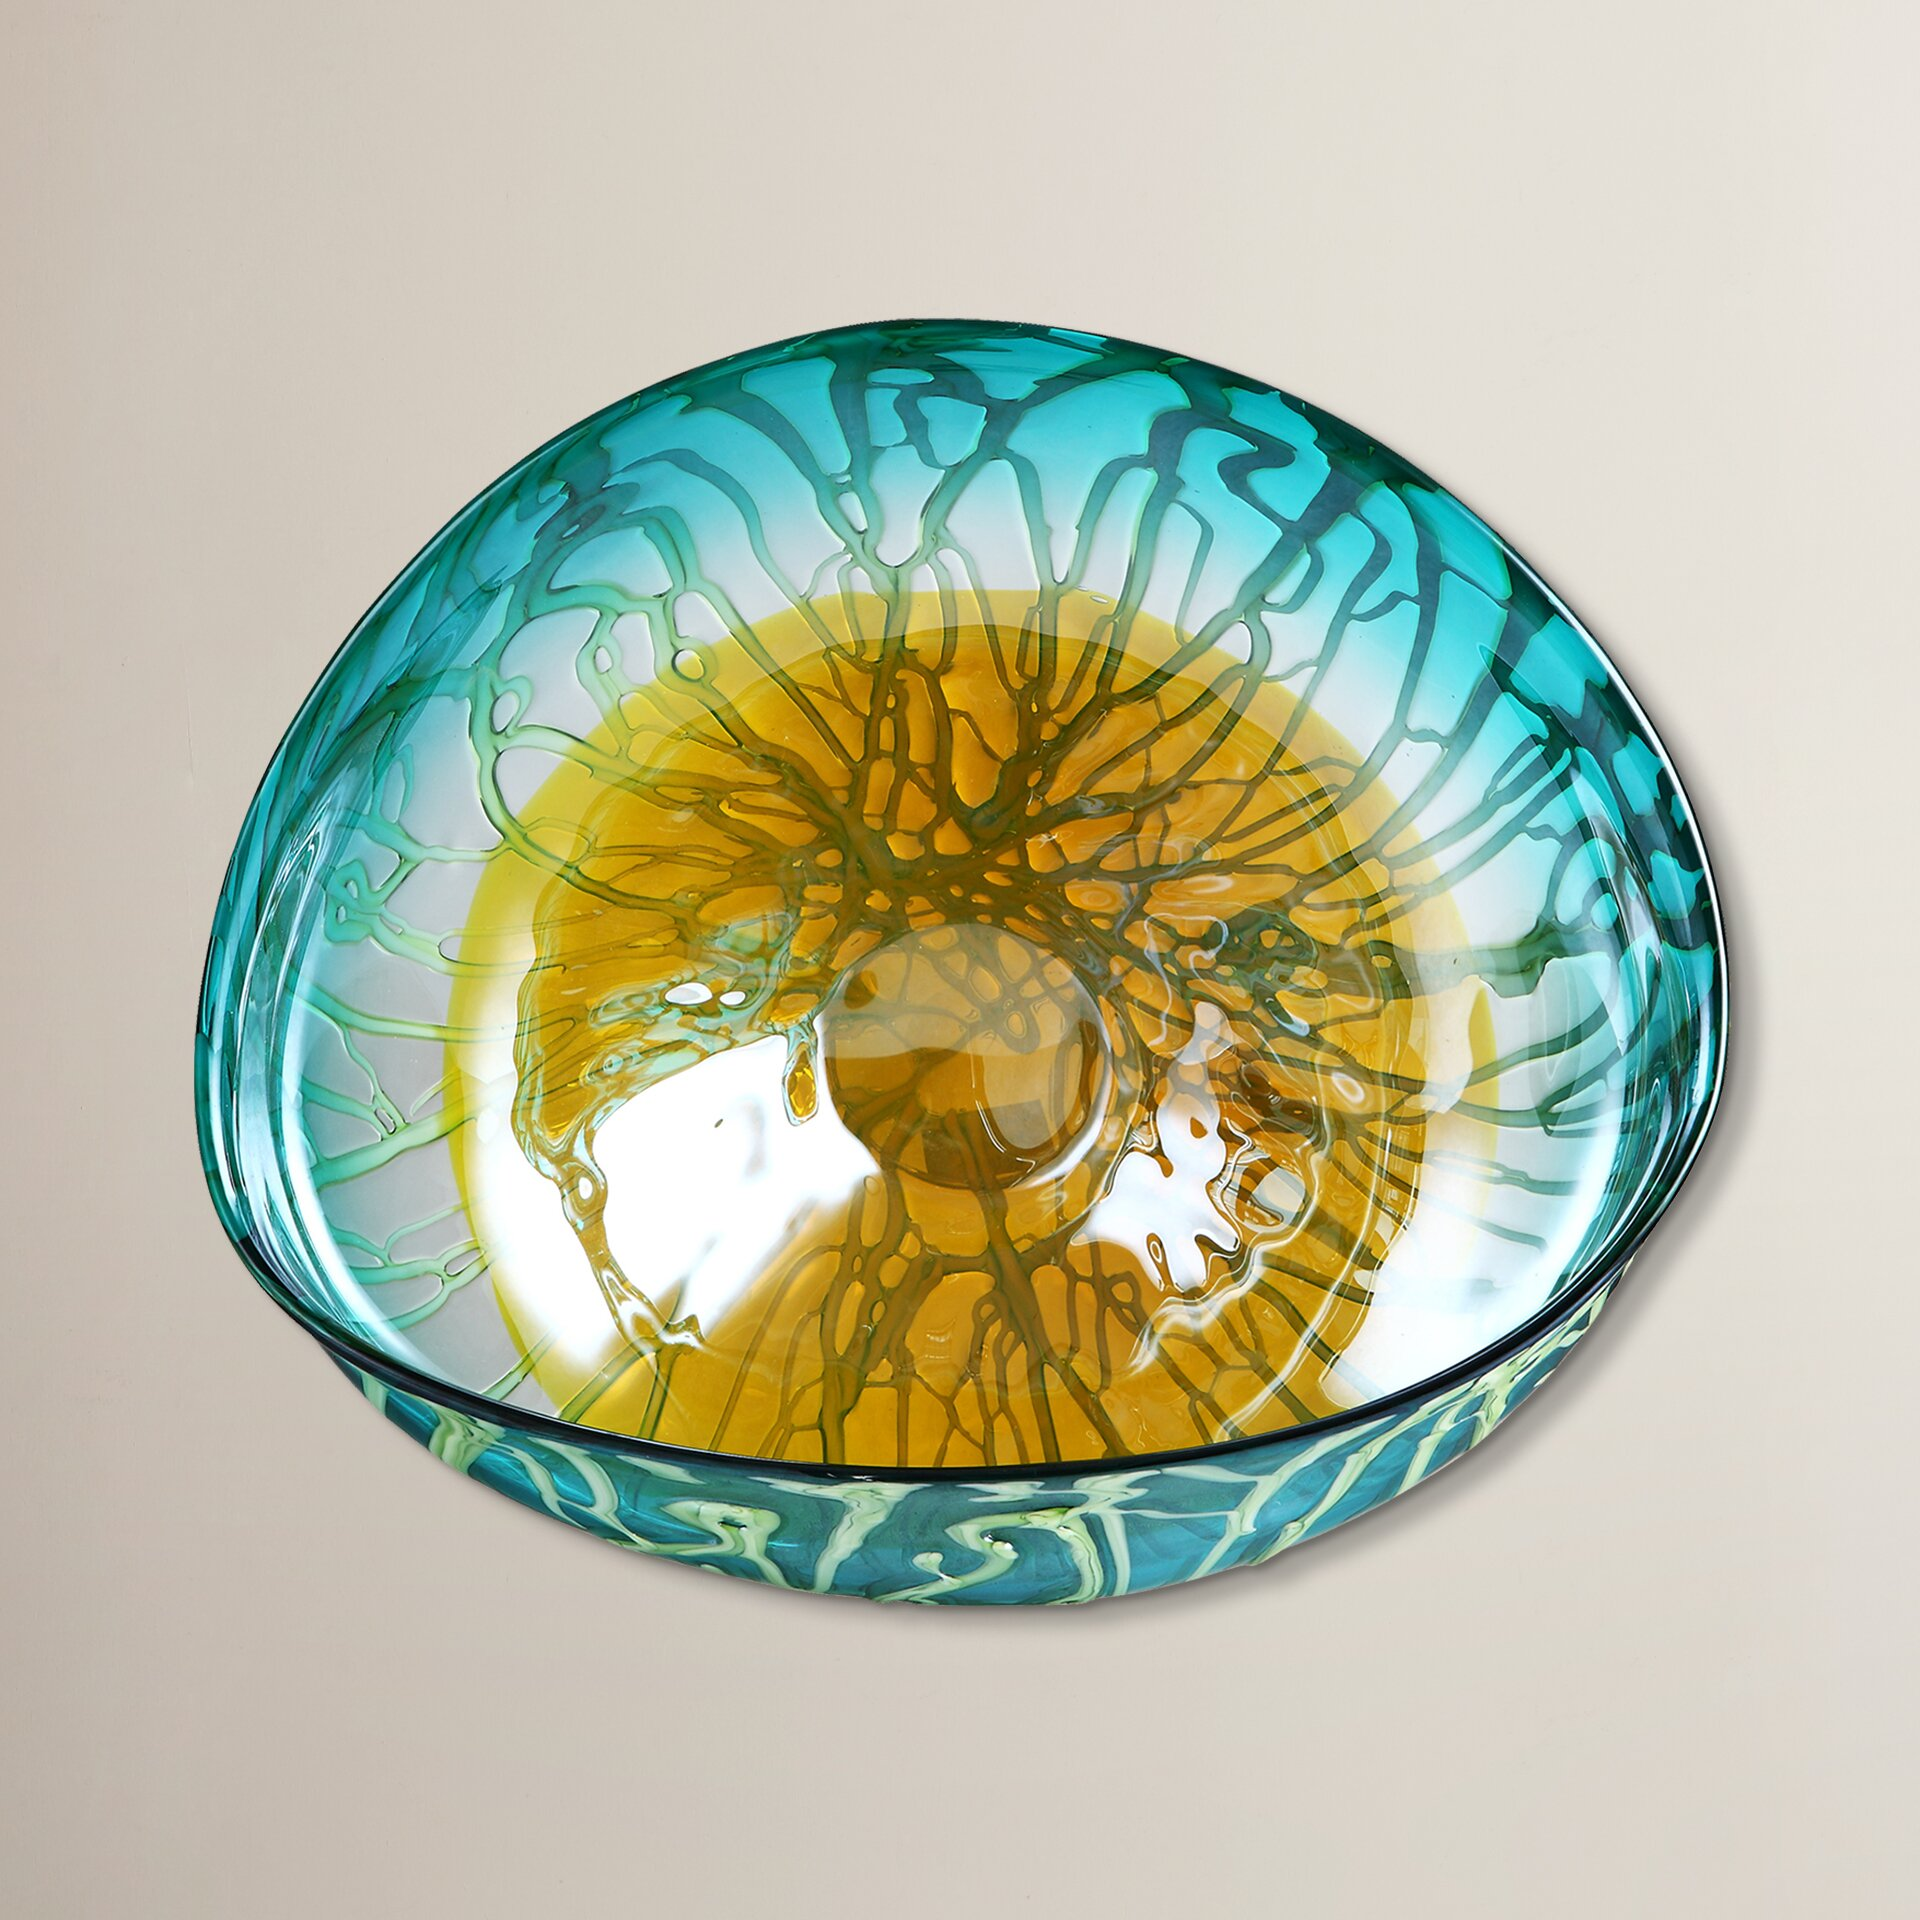 Contemporary Plate Wall Decor Motif - Art & Wall Decor - hecatalog.info